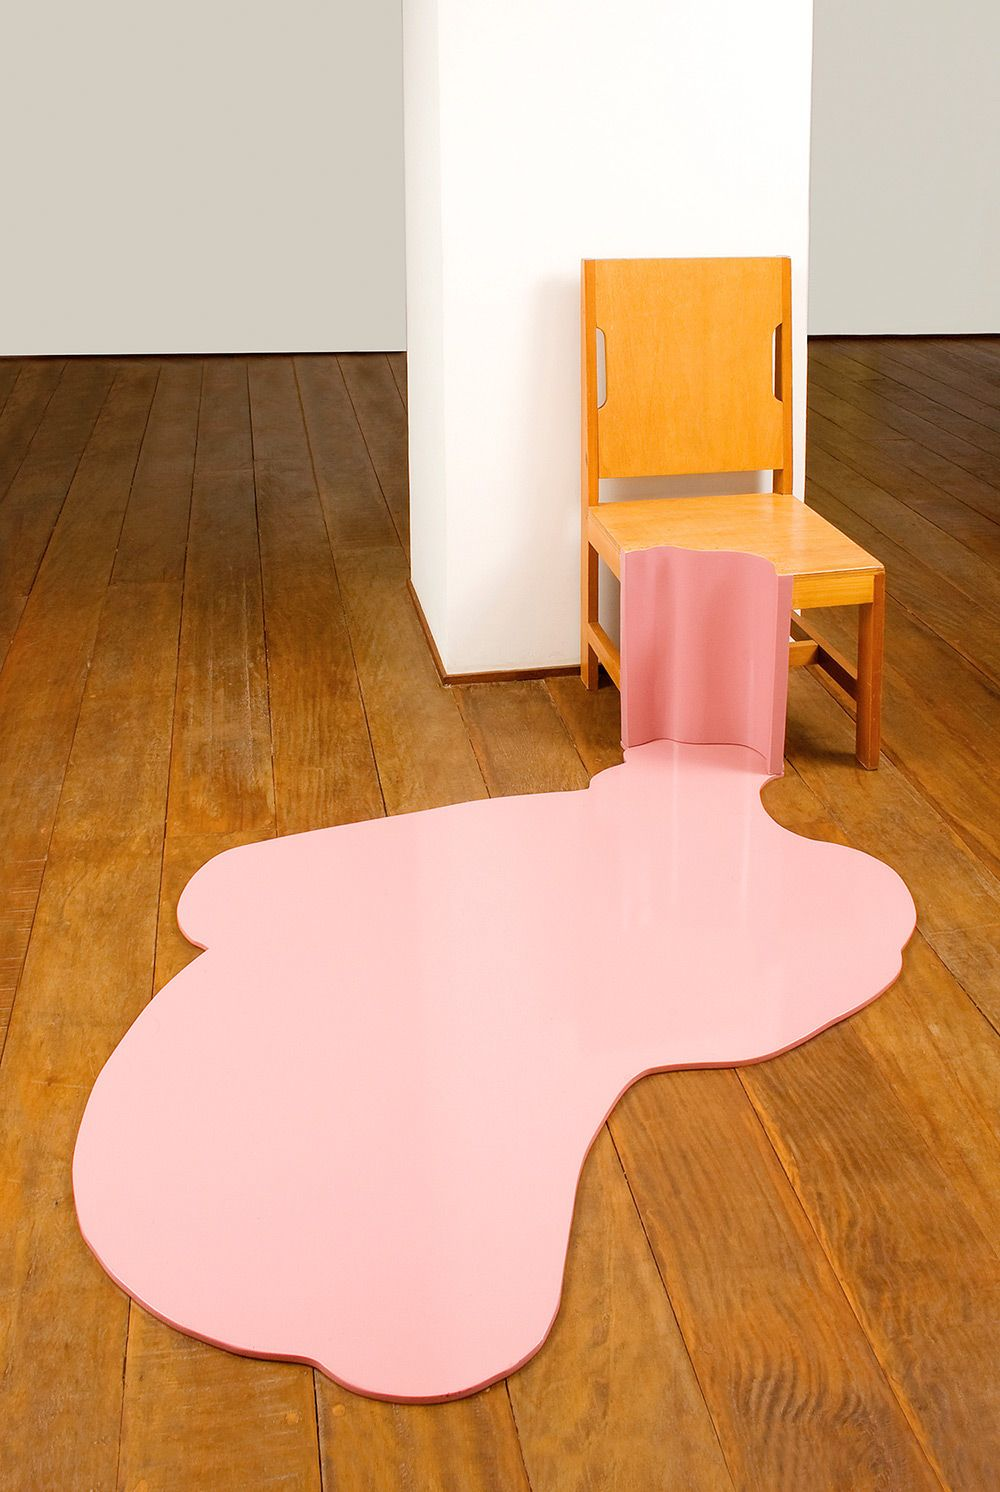 Chairs And Other Sculptural Objects That Melt Into The Floor By Tatiana Blass In 2020 Art Chair Art Furniture Chair